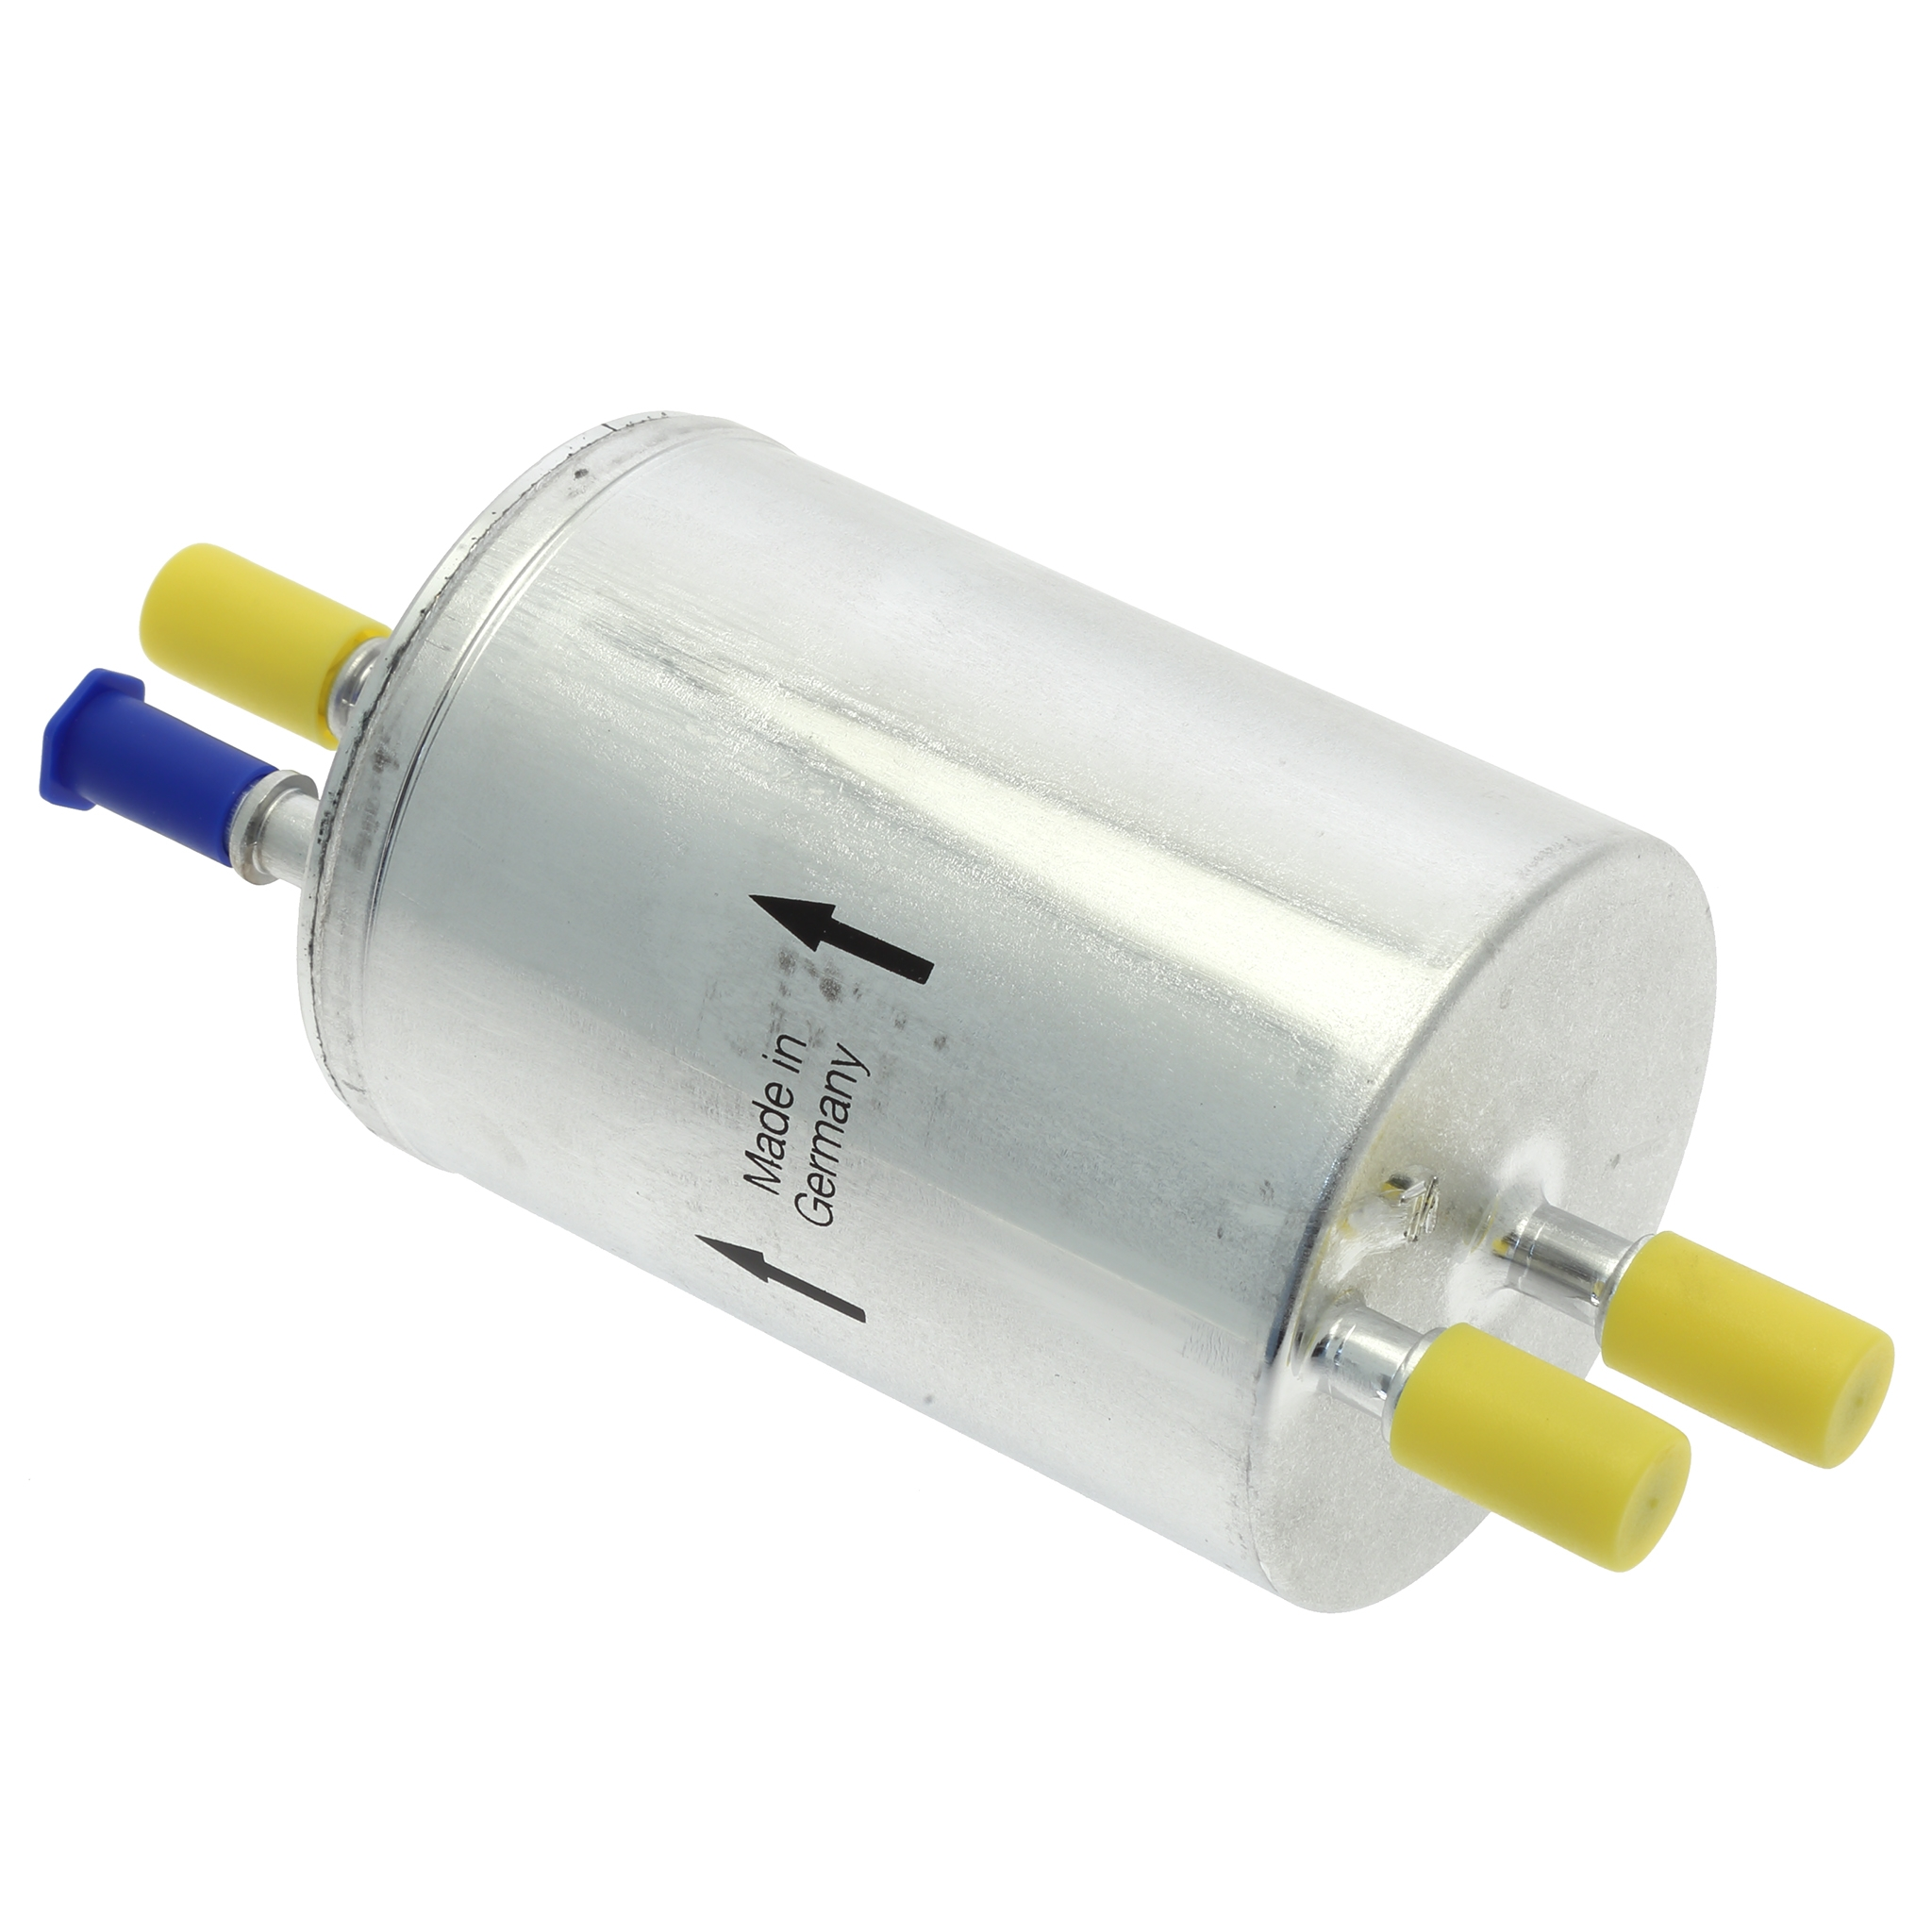 [DIAGRAM_38IU]  Audi Fuel Filter (A4 S4 B6 B7, w/ 4 Hose Connections) 8E0201511J by OE  Supplier | 2009 Vw Pat Fuel Filter |  | Europa Parts